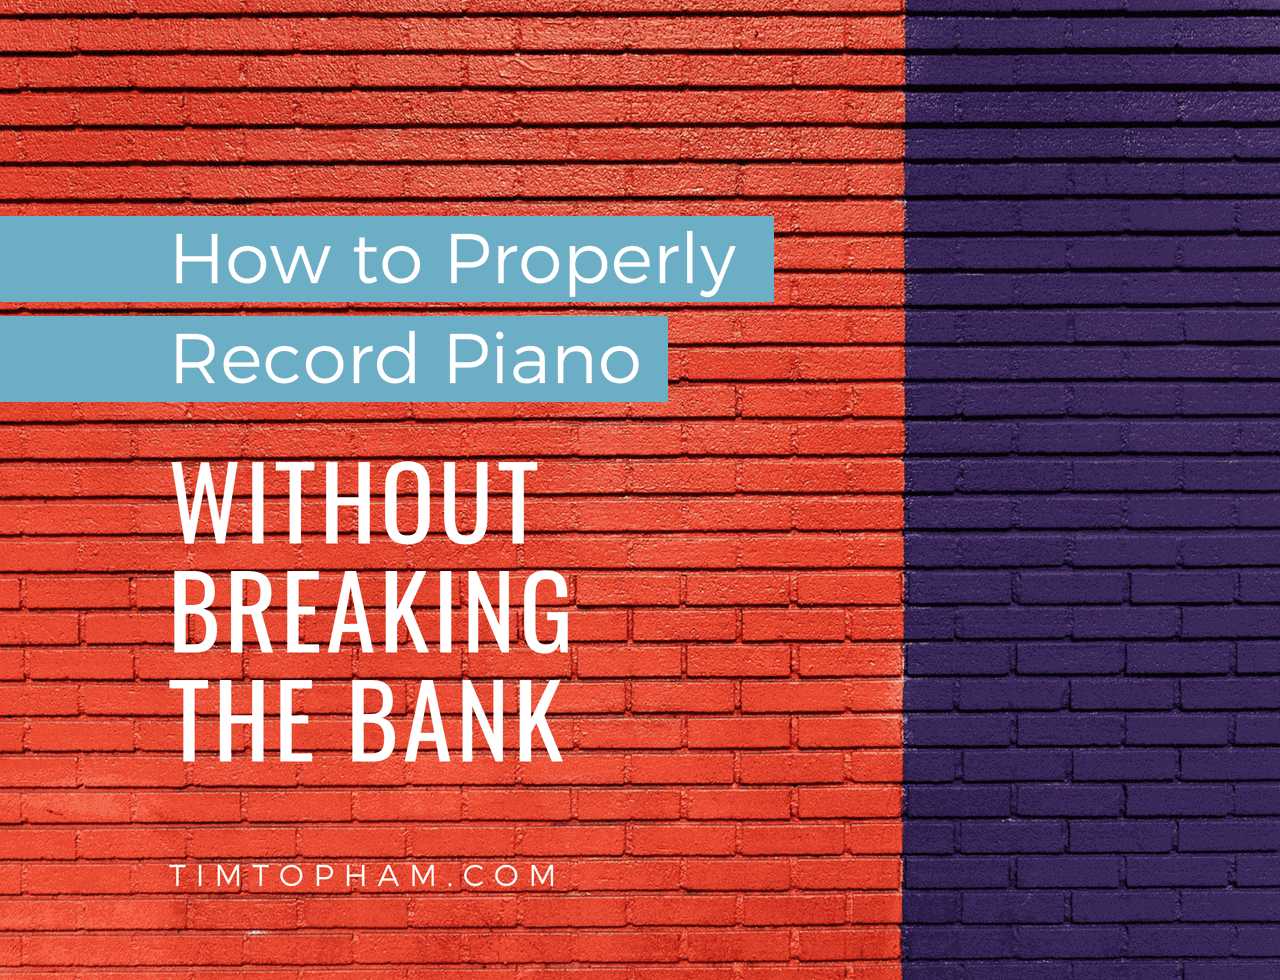 properly record piano without breaking bank